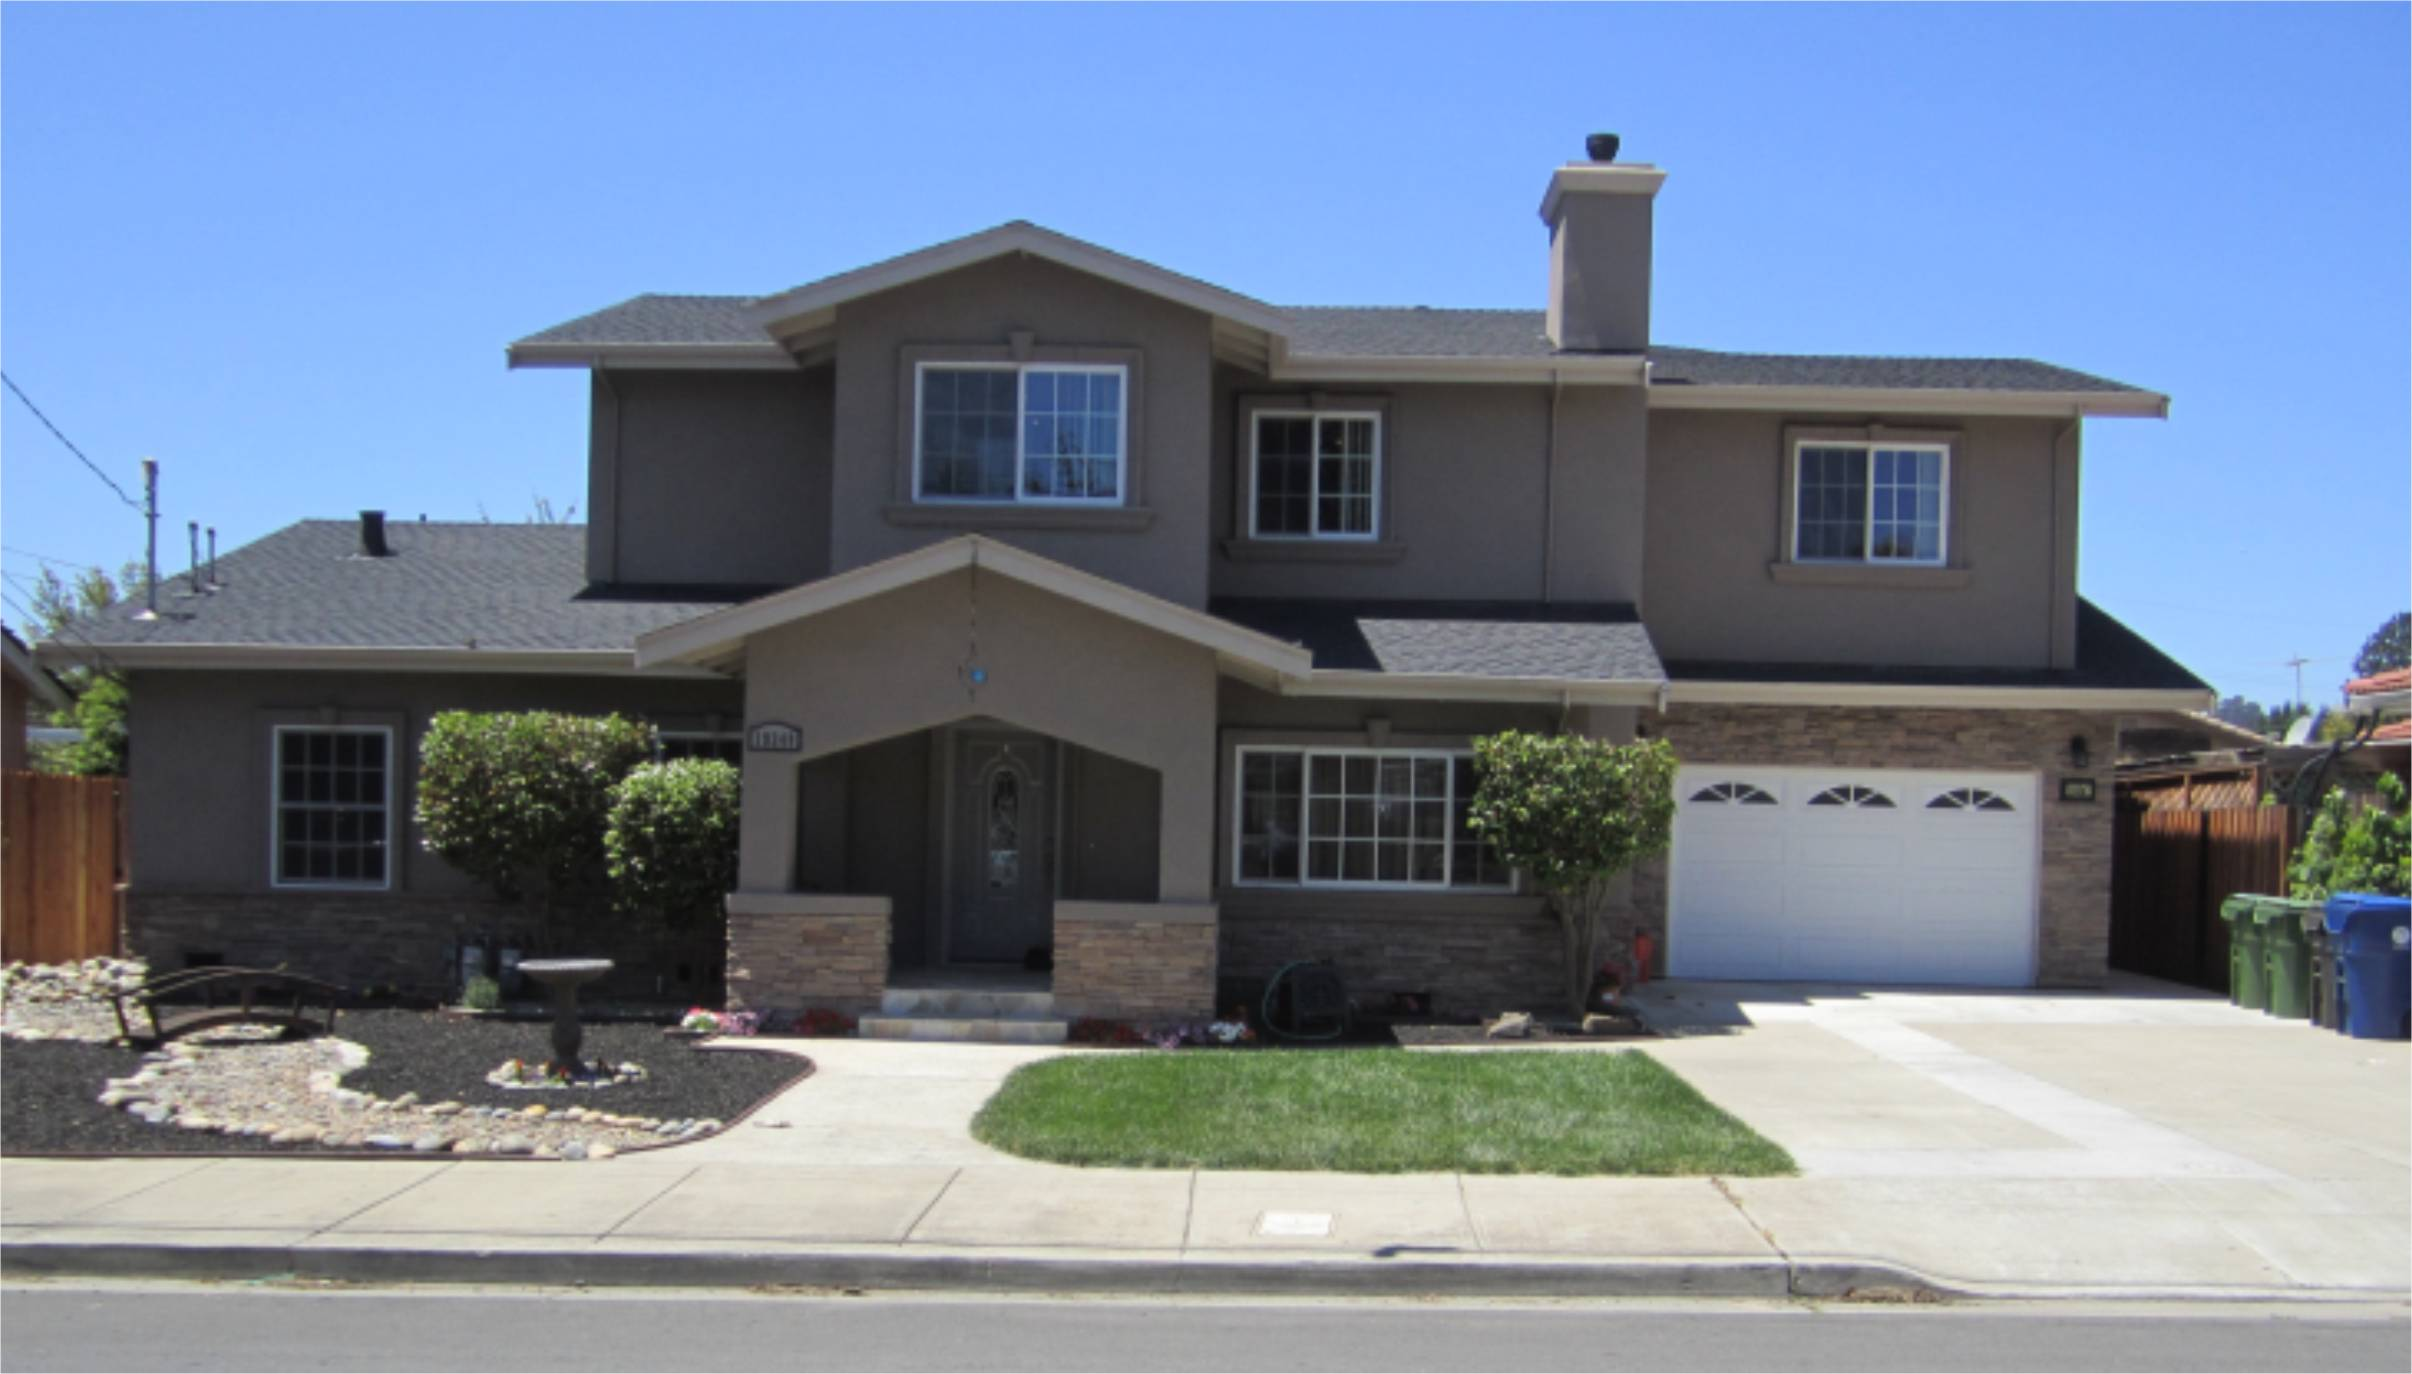 JUST LISTED! 19349 Santa Maria Ave. Castro Valley, CA ...